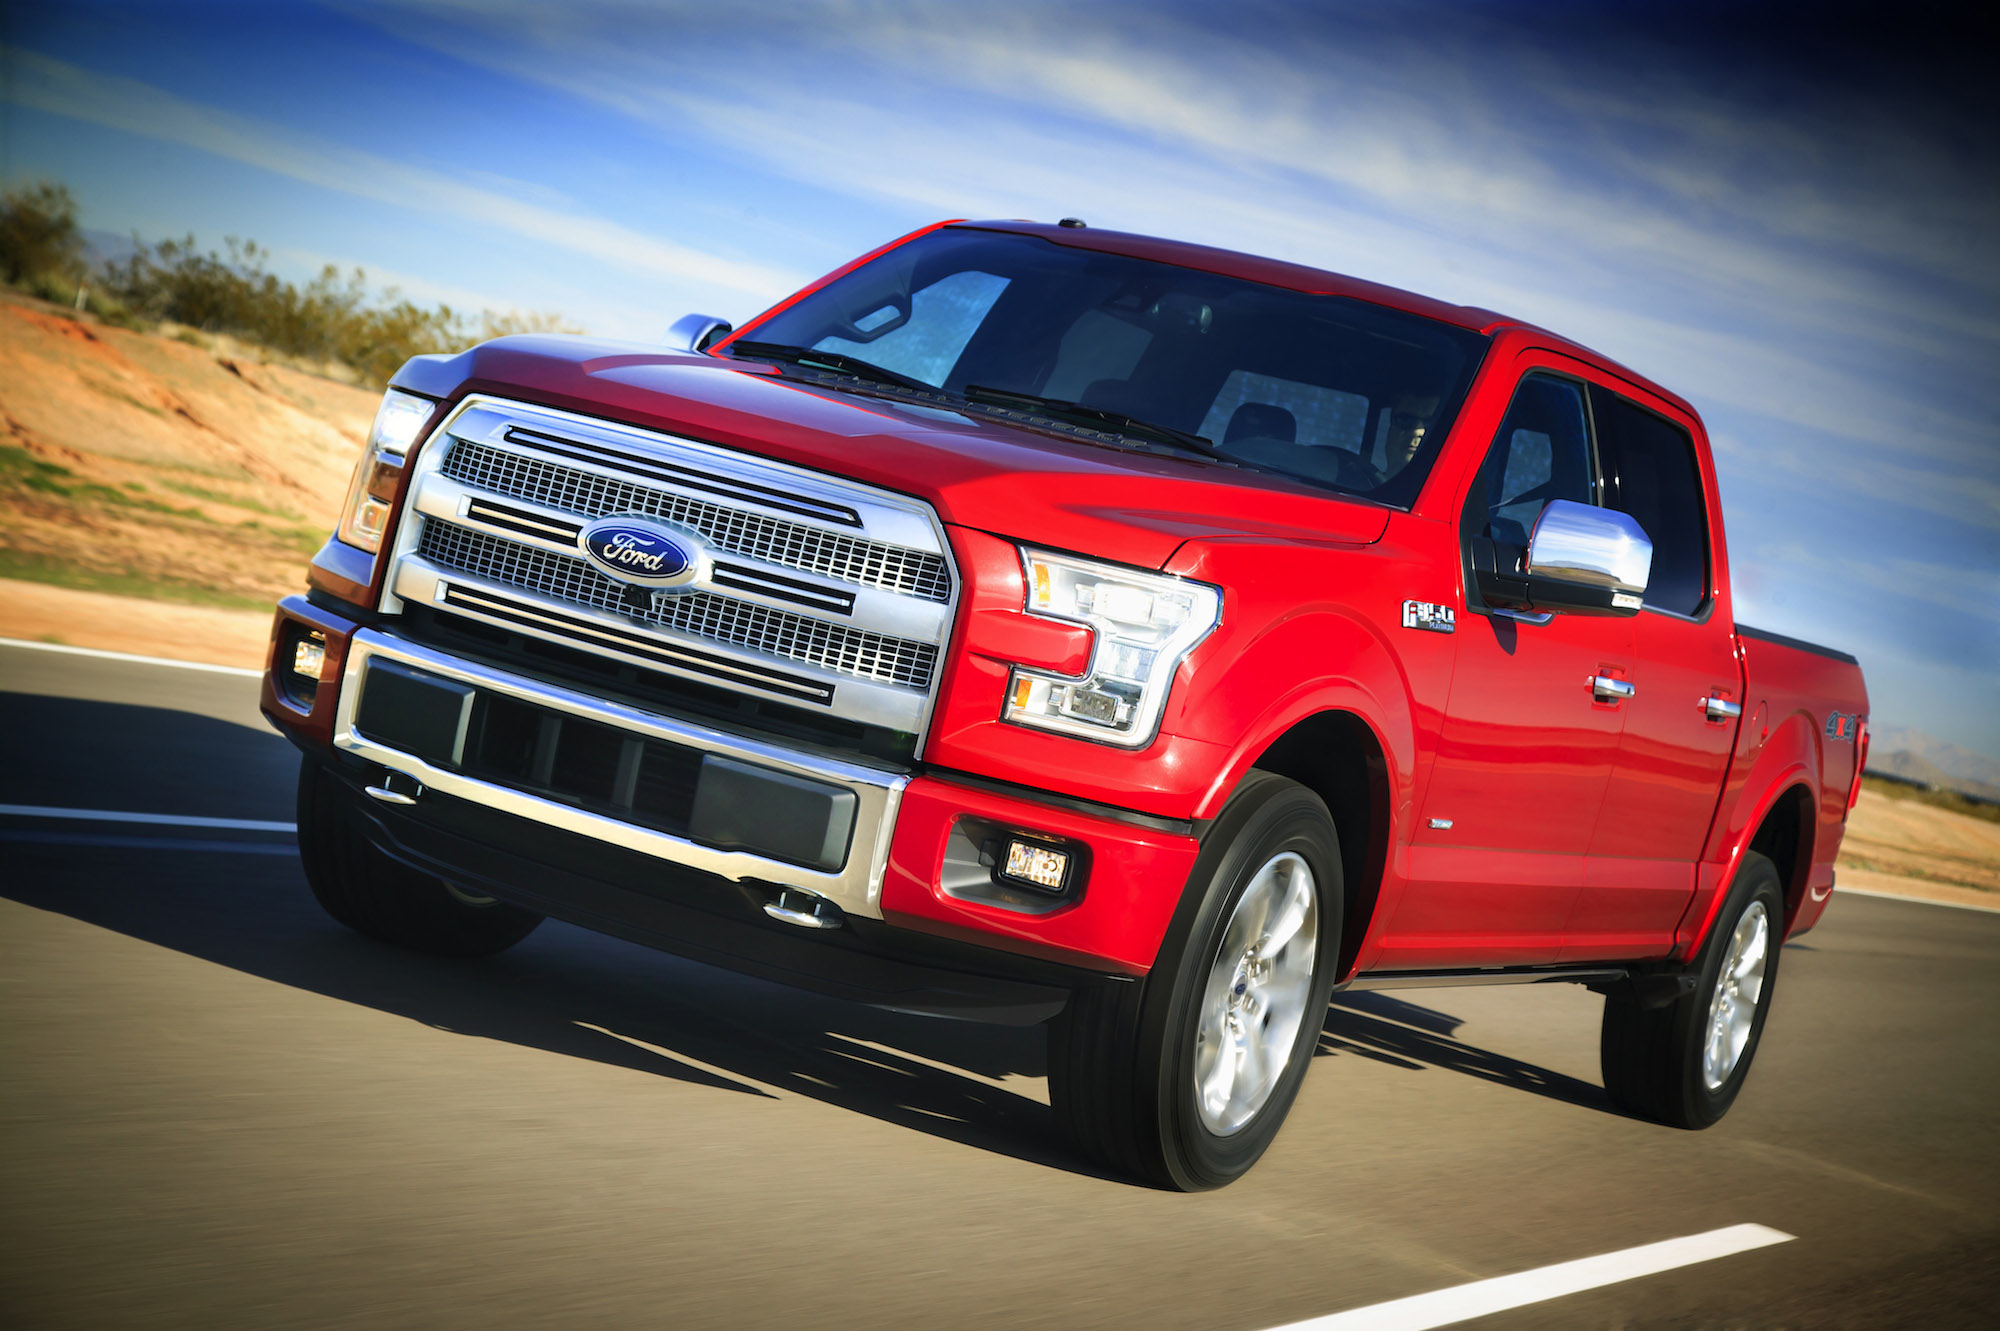 Aluminum-Bodied 2015 Ford F-150 Pickup Truck: Buyers Intrigued, Report Says